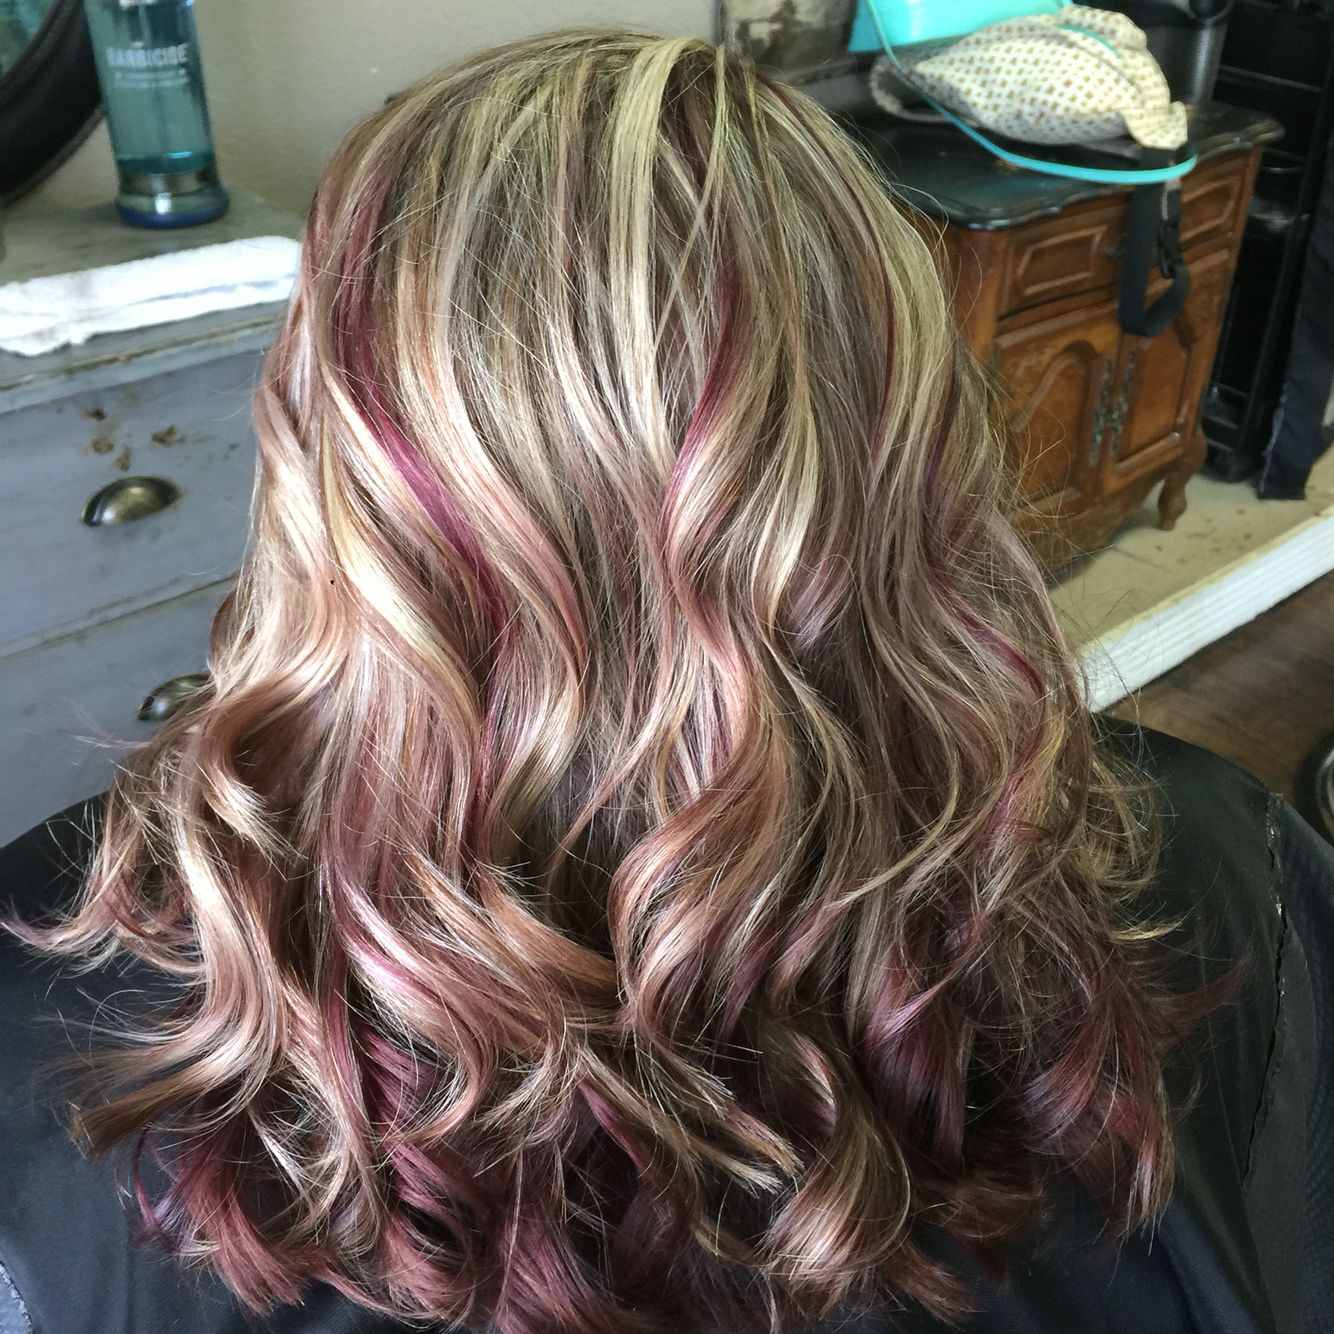 Love my hair violet red underneath with highlights as well as brown